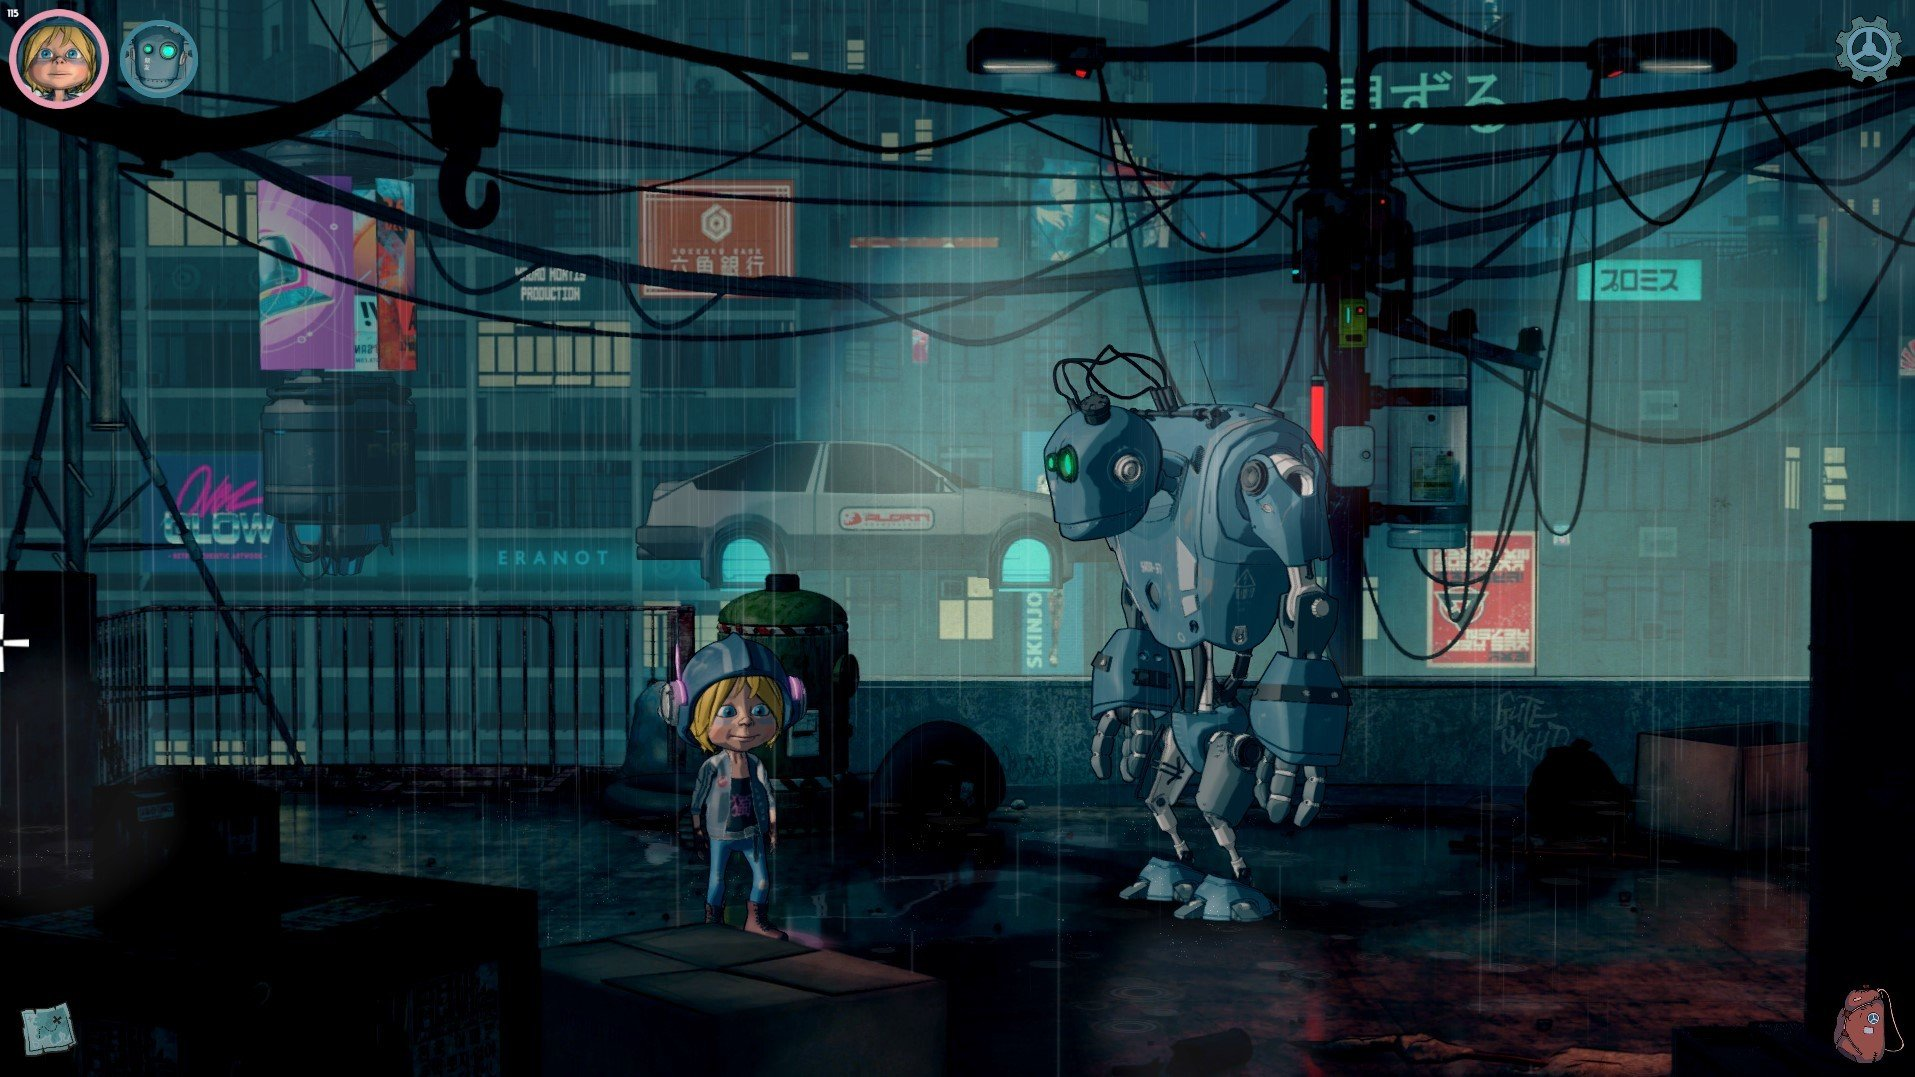 Cyberpunk Point and Click Adventure Encodya Is Set To Release On January 26th, 2021